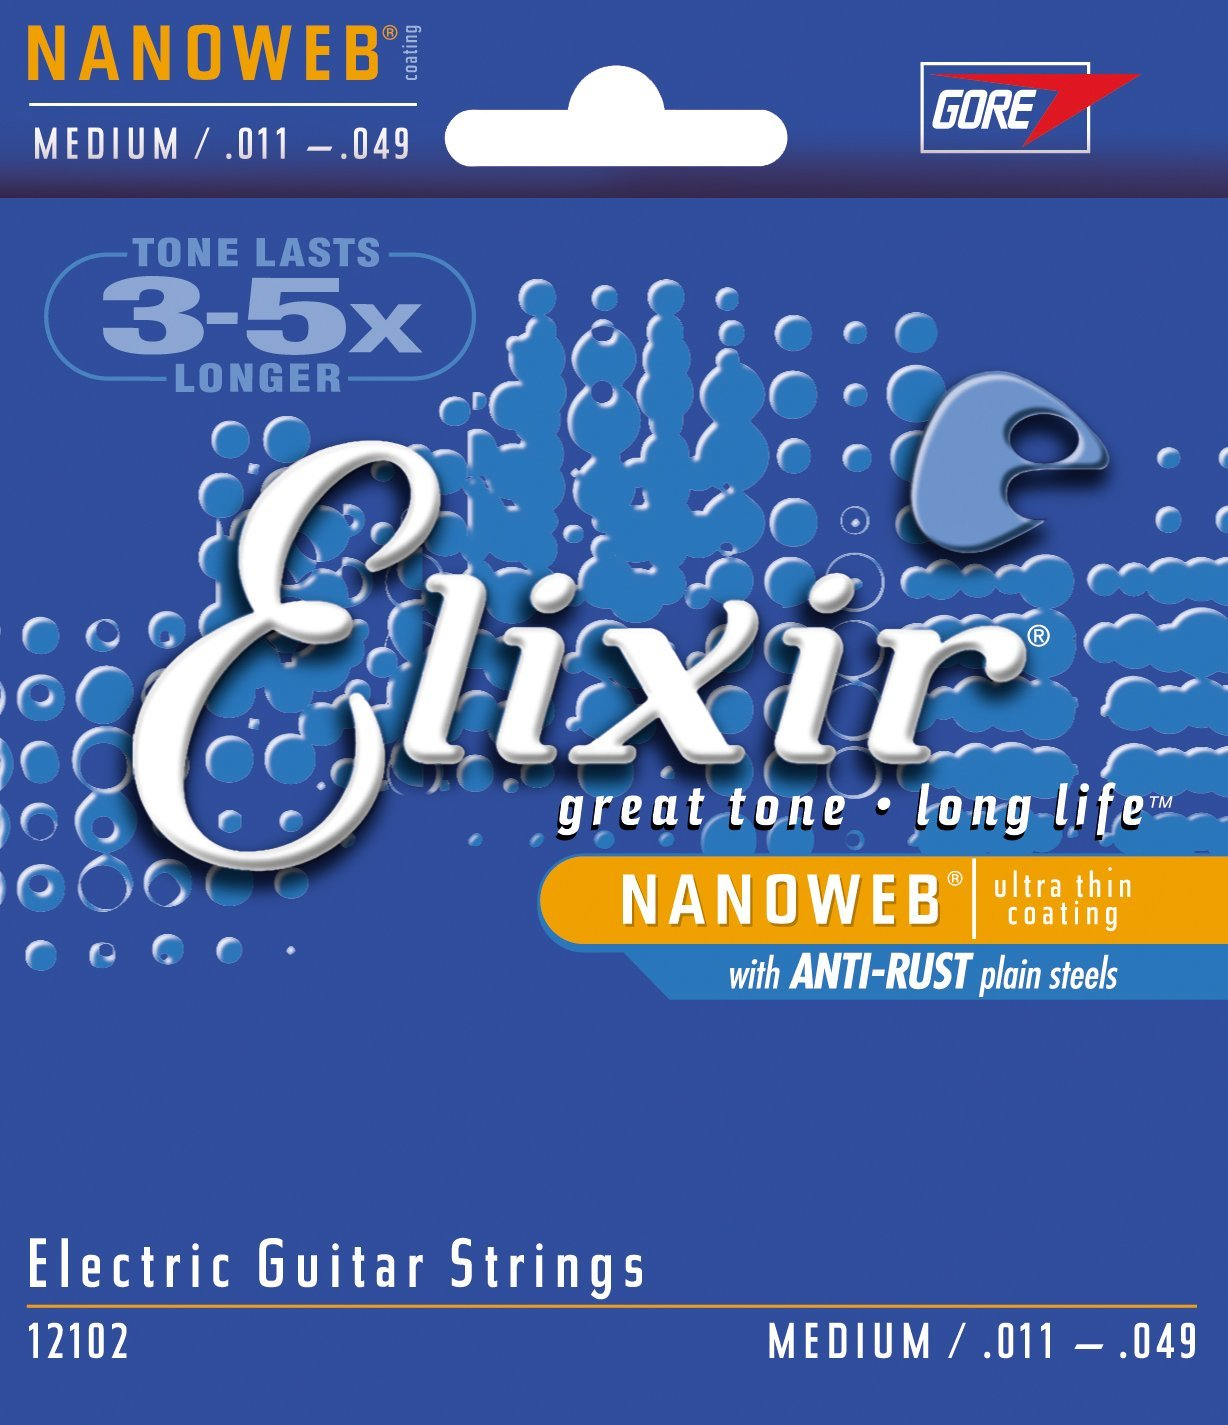 Elixir 12102 Electric Guitar Strings with NANOWEB Coating, Medium (.011-.049)